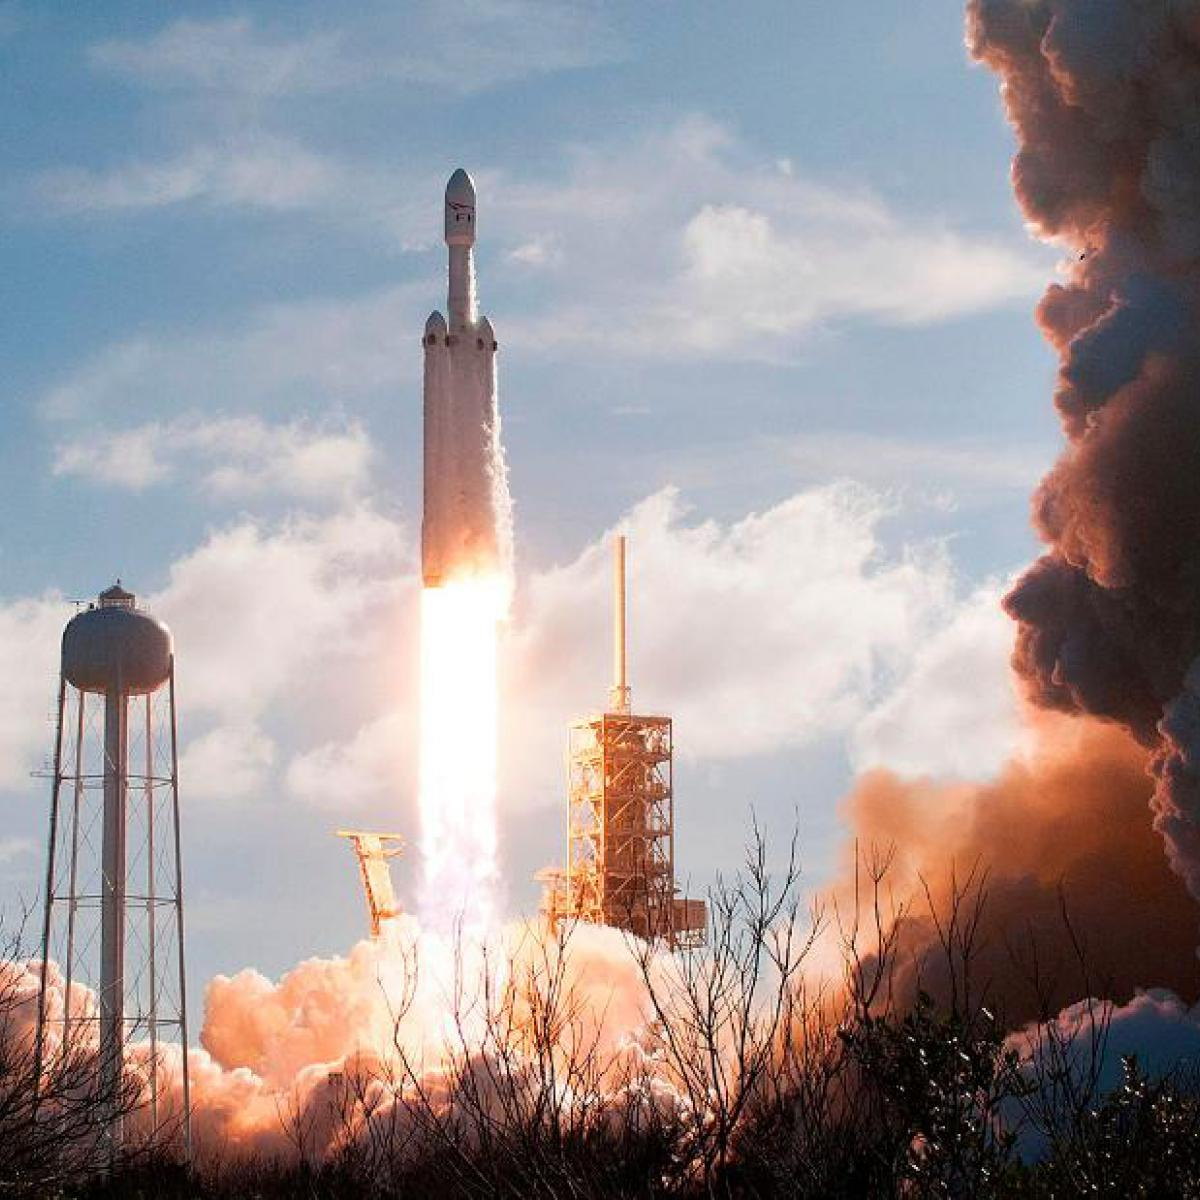 spacex falcon heavy launch today - HD1200×1200